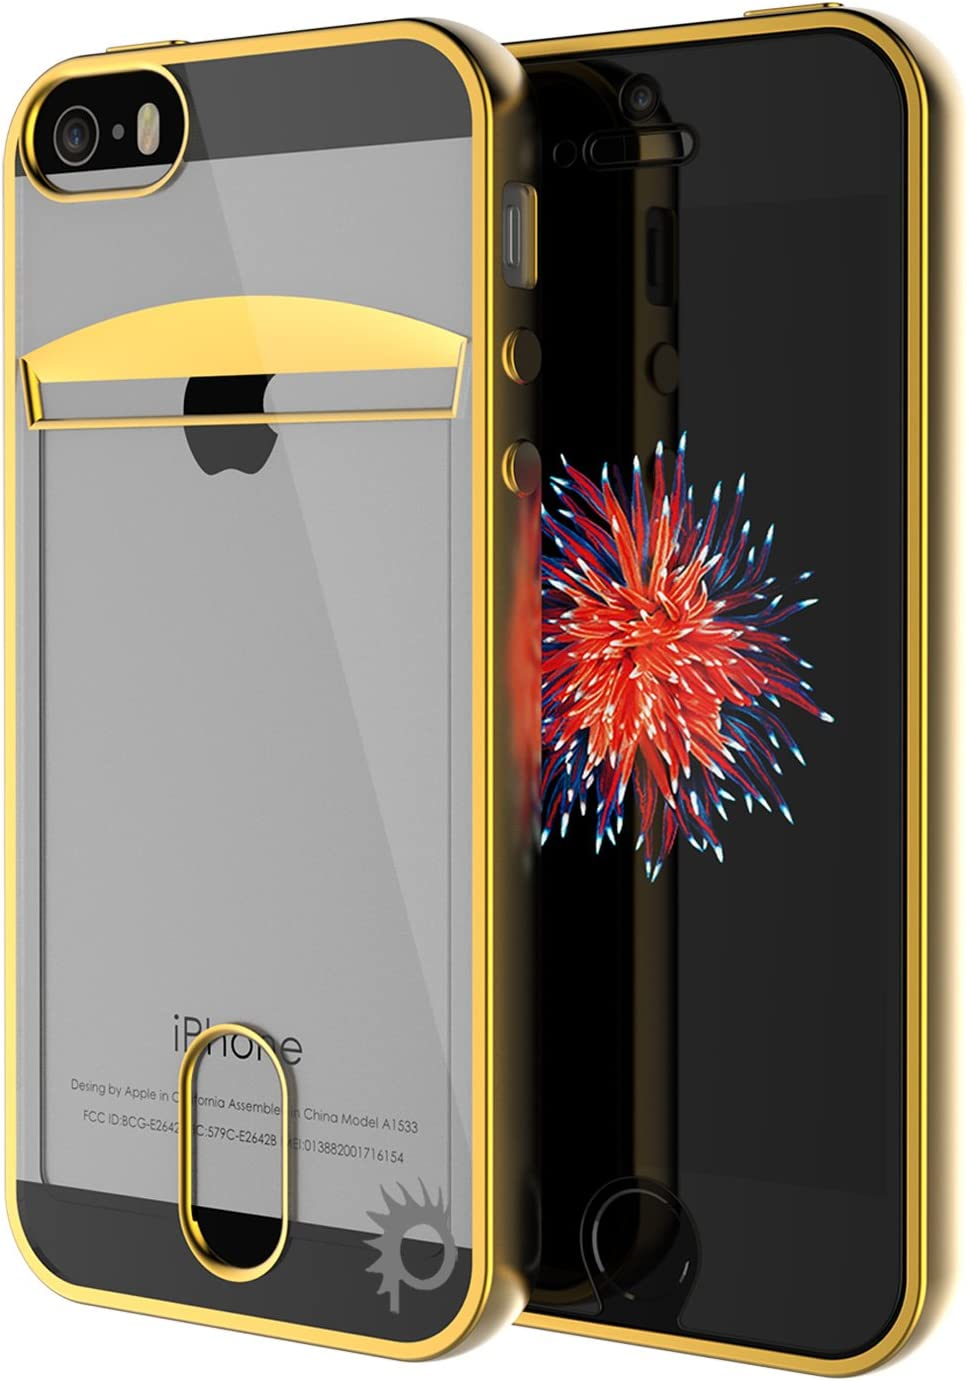 iPhone SE / 5S / 5 Case, PUNKcase [Lucid Series] Slim Fit Protective Armor Cover w/Scratch Resistant PUNKSHIELD Screen Protector-Card Slot Design for Apple iPhone SE/iPhone 5s & iPhone 5 [Gold]